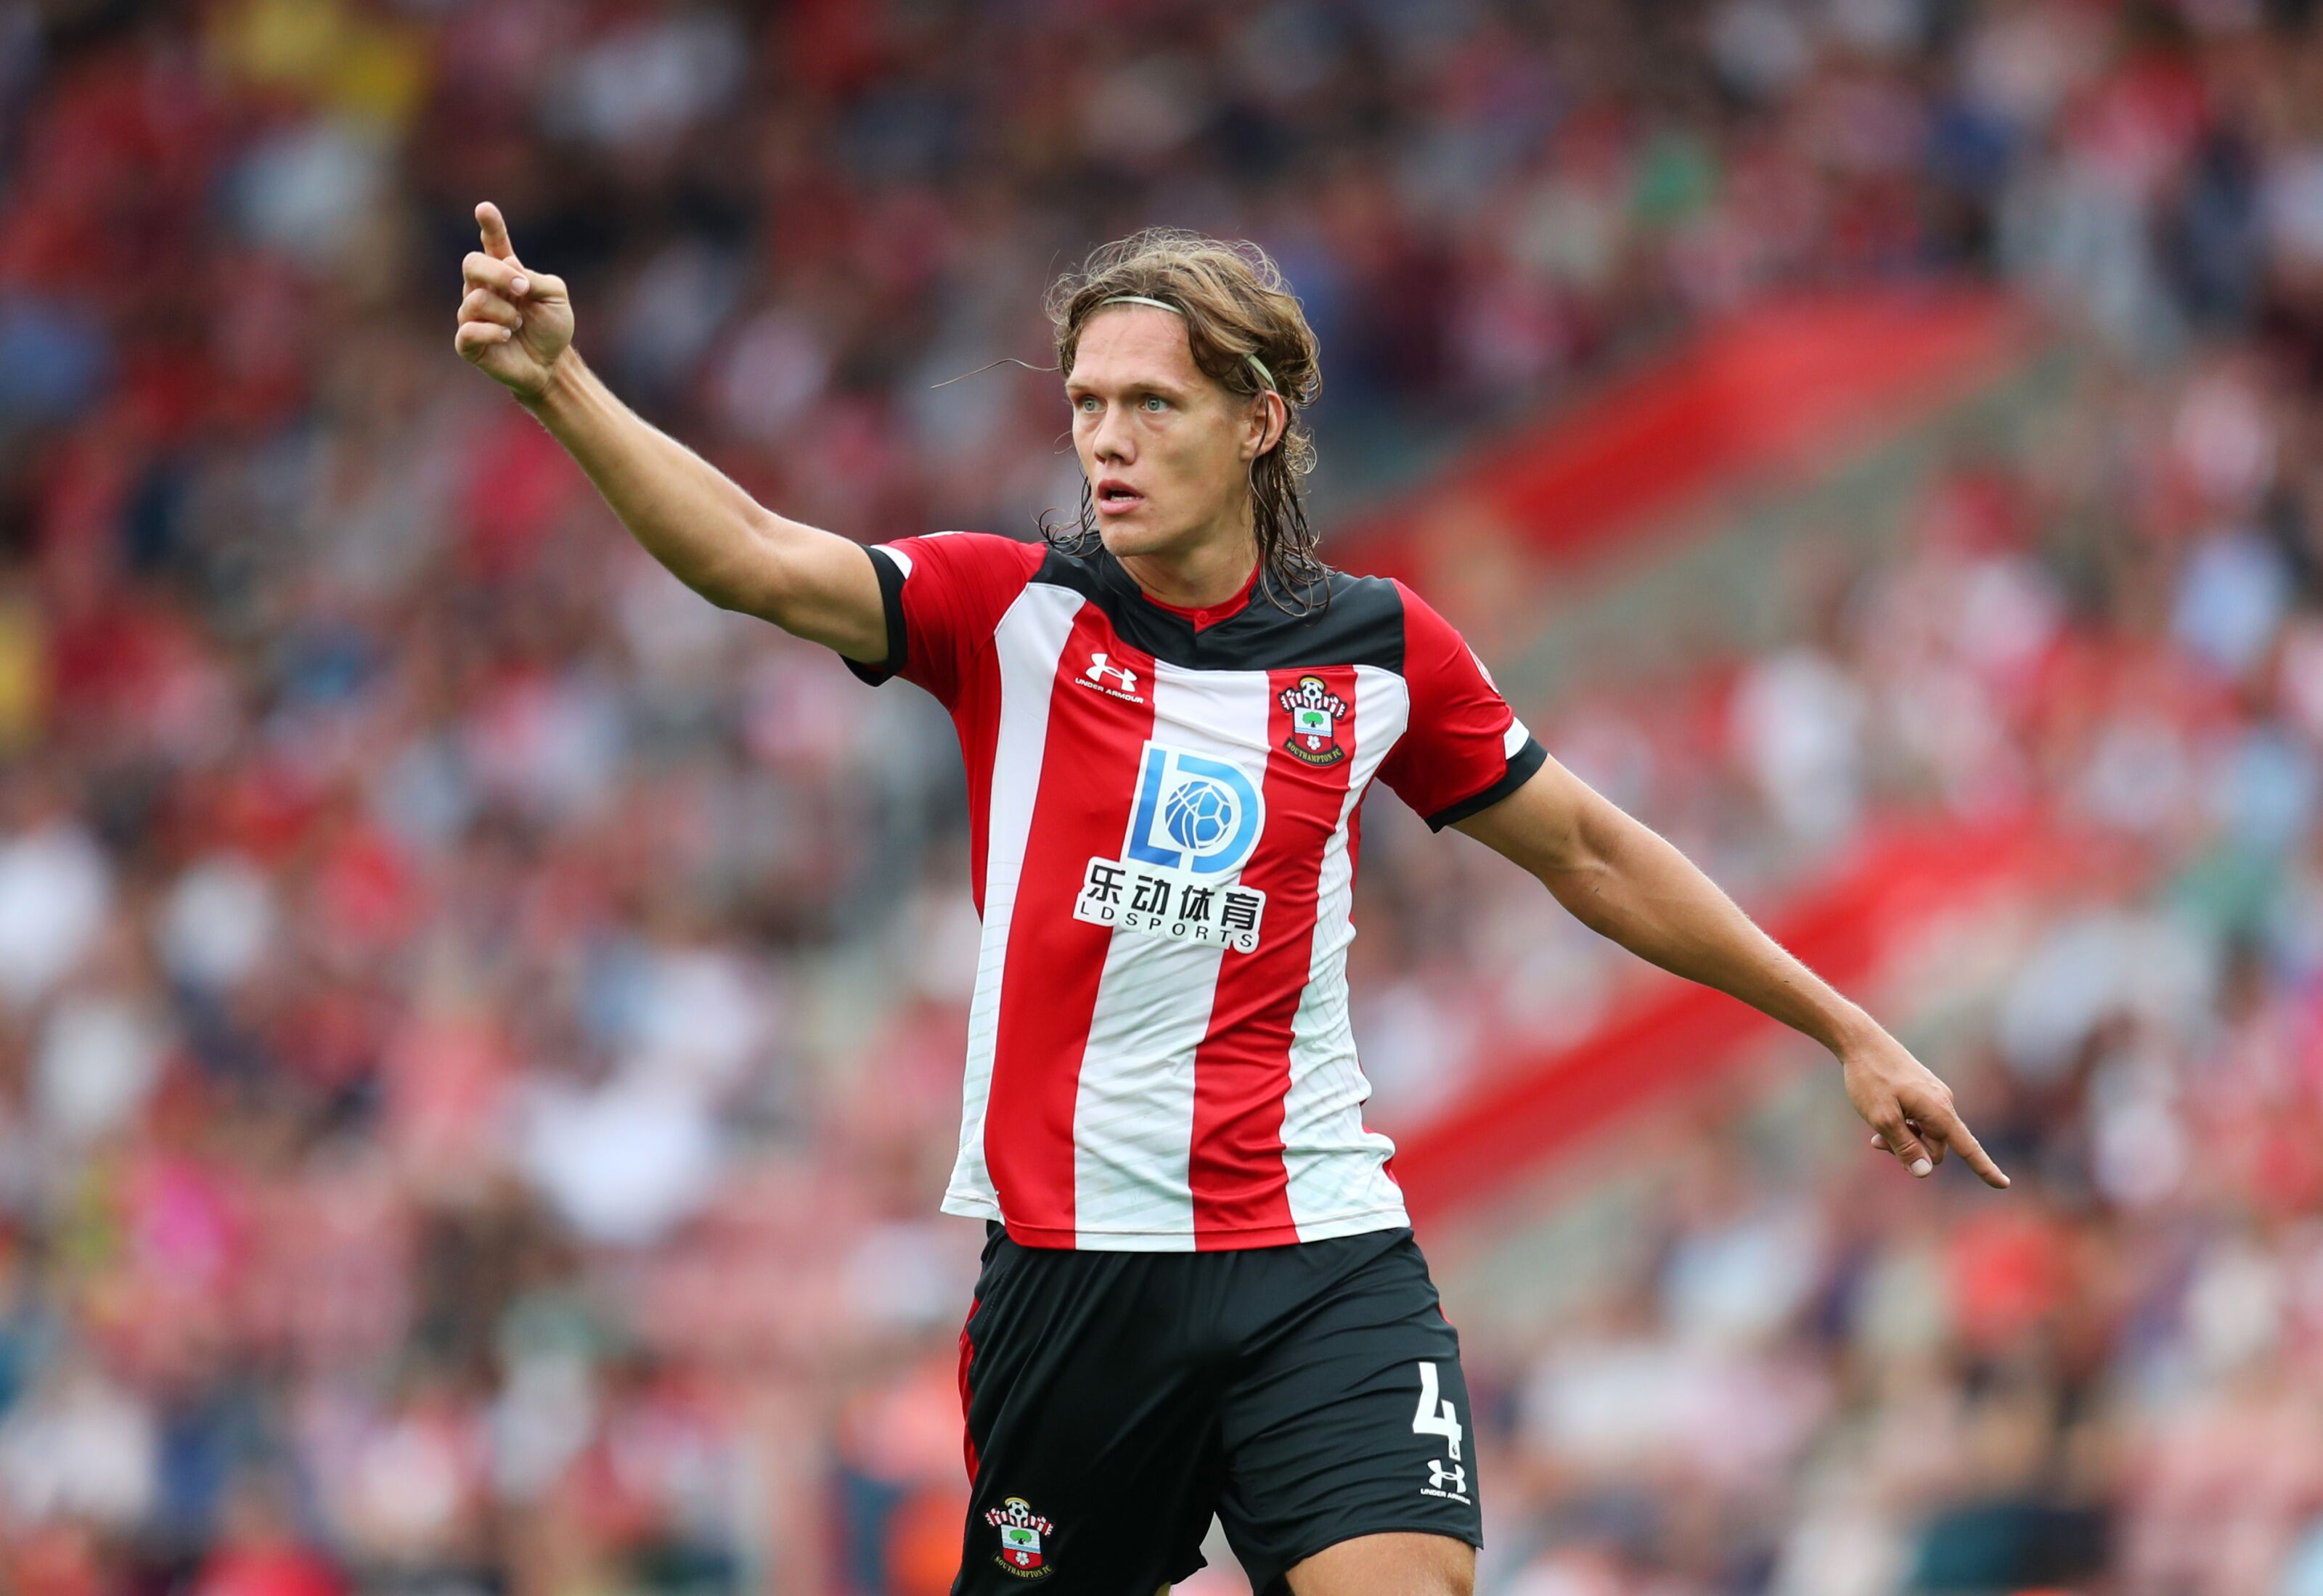 Southampton: Saints receive huge striker offer, could let defender leave